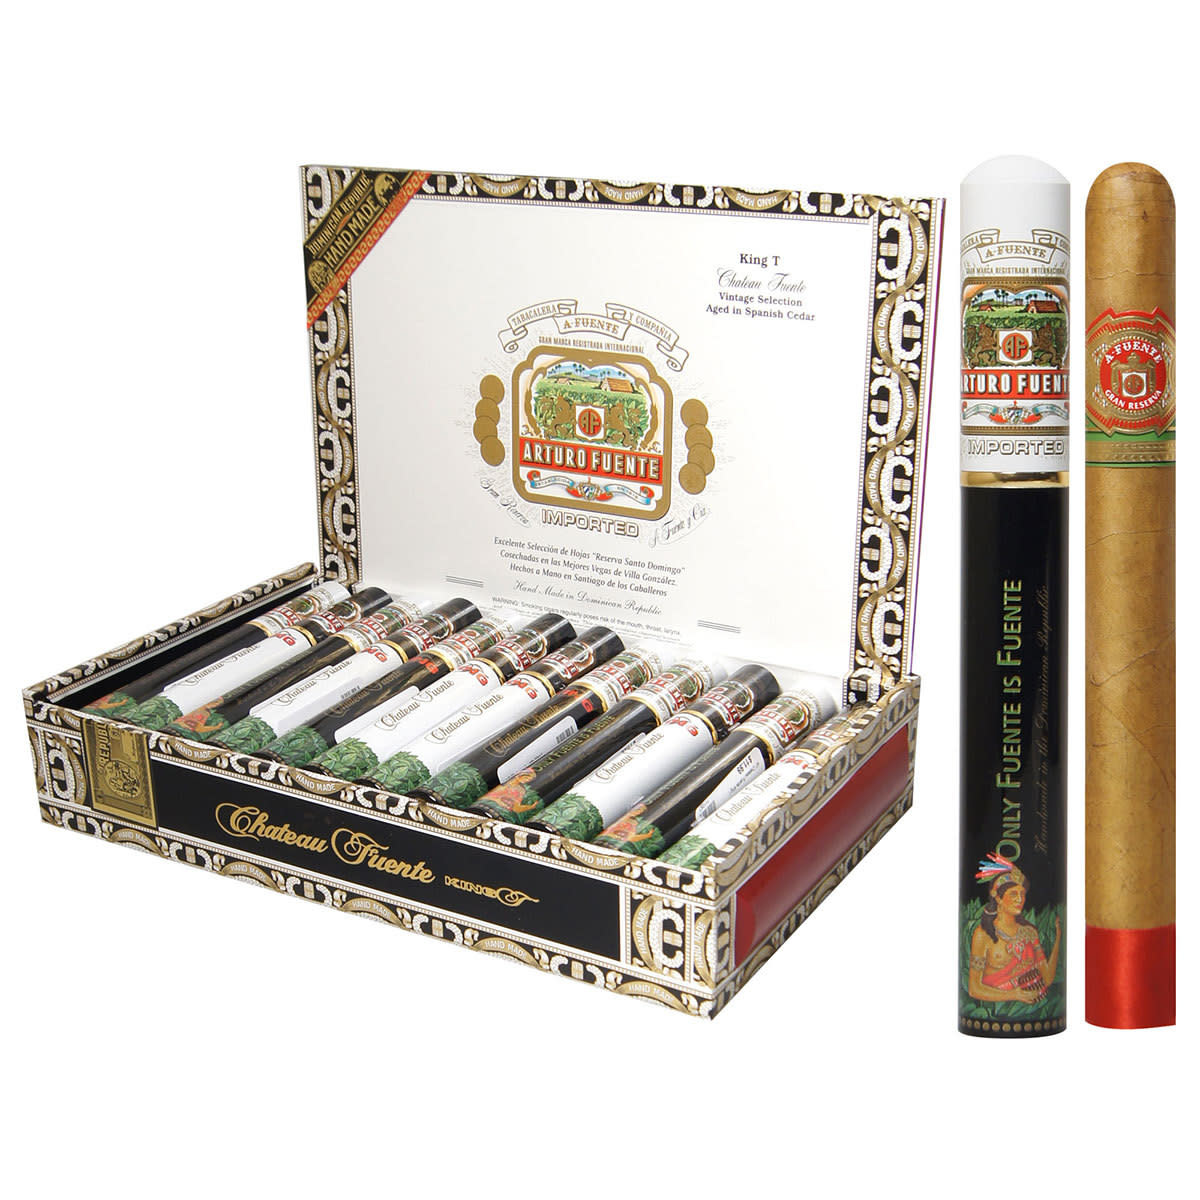 Arturo Fuente AF KING T RED ROSADO SINGLE